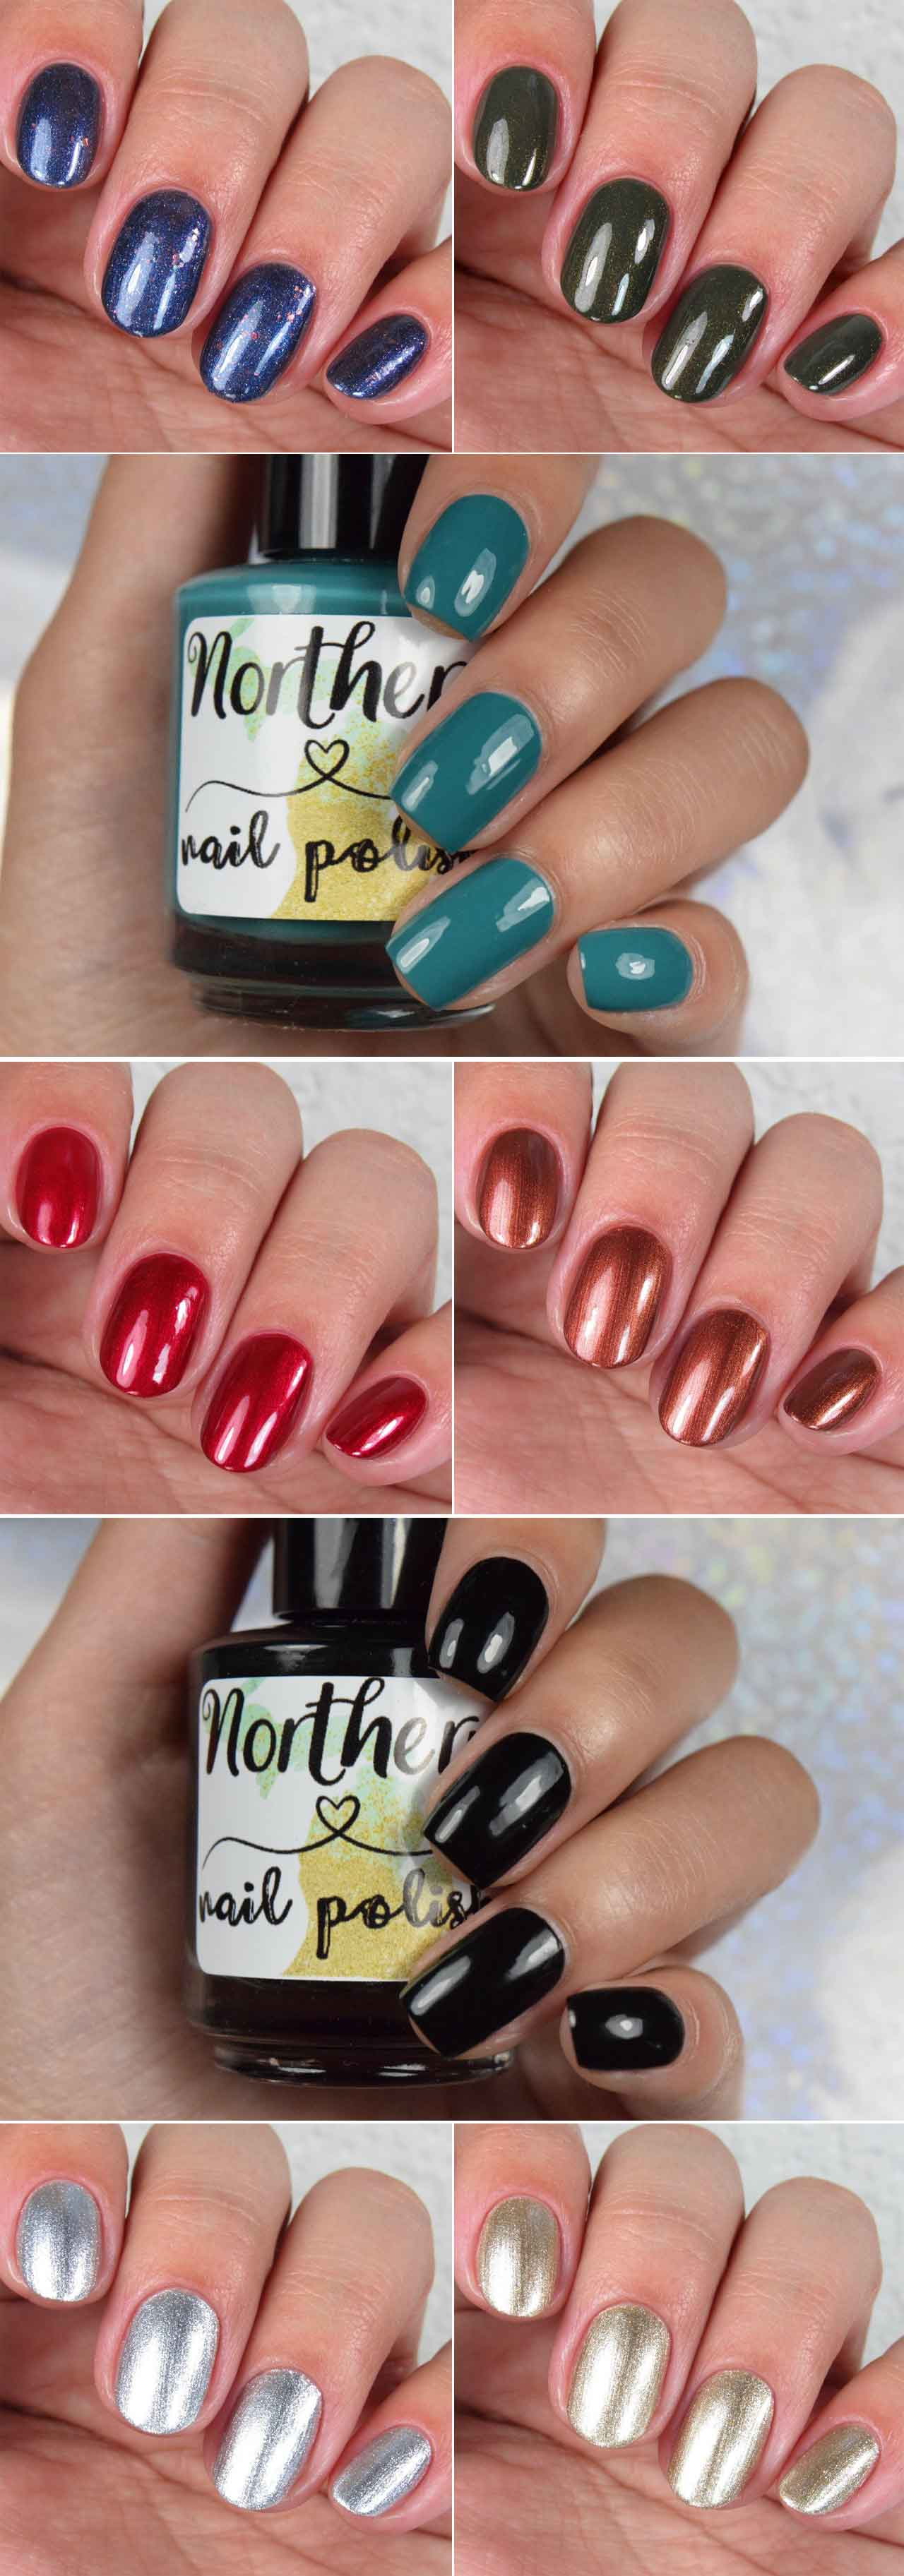 Northern Nail Polish Nail Polishes